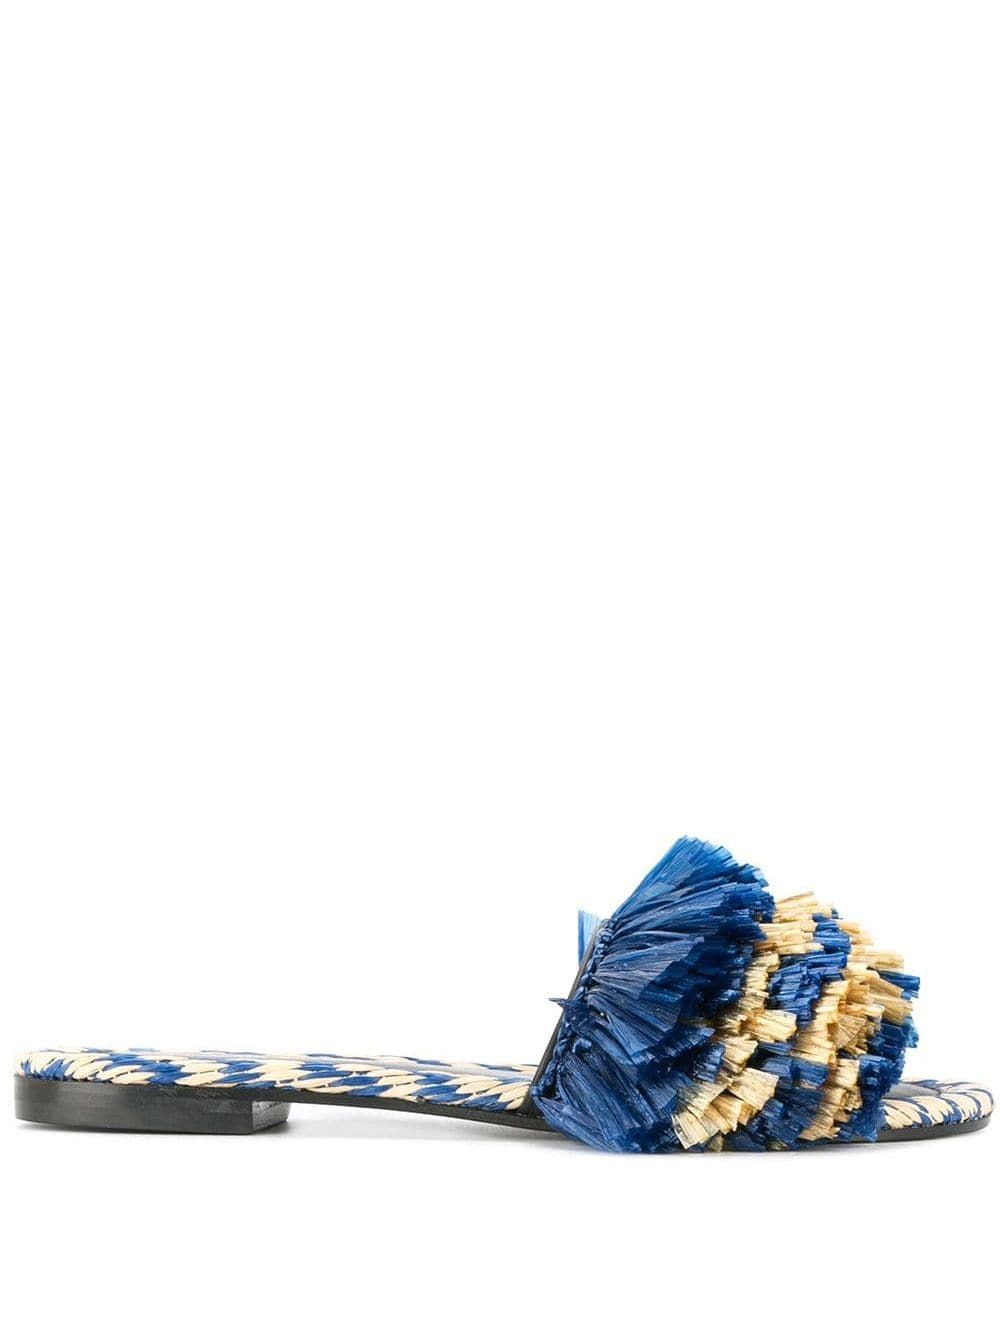 Blue and gold calf leather fringed slippers from Avec Modération.